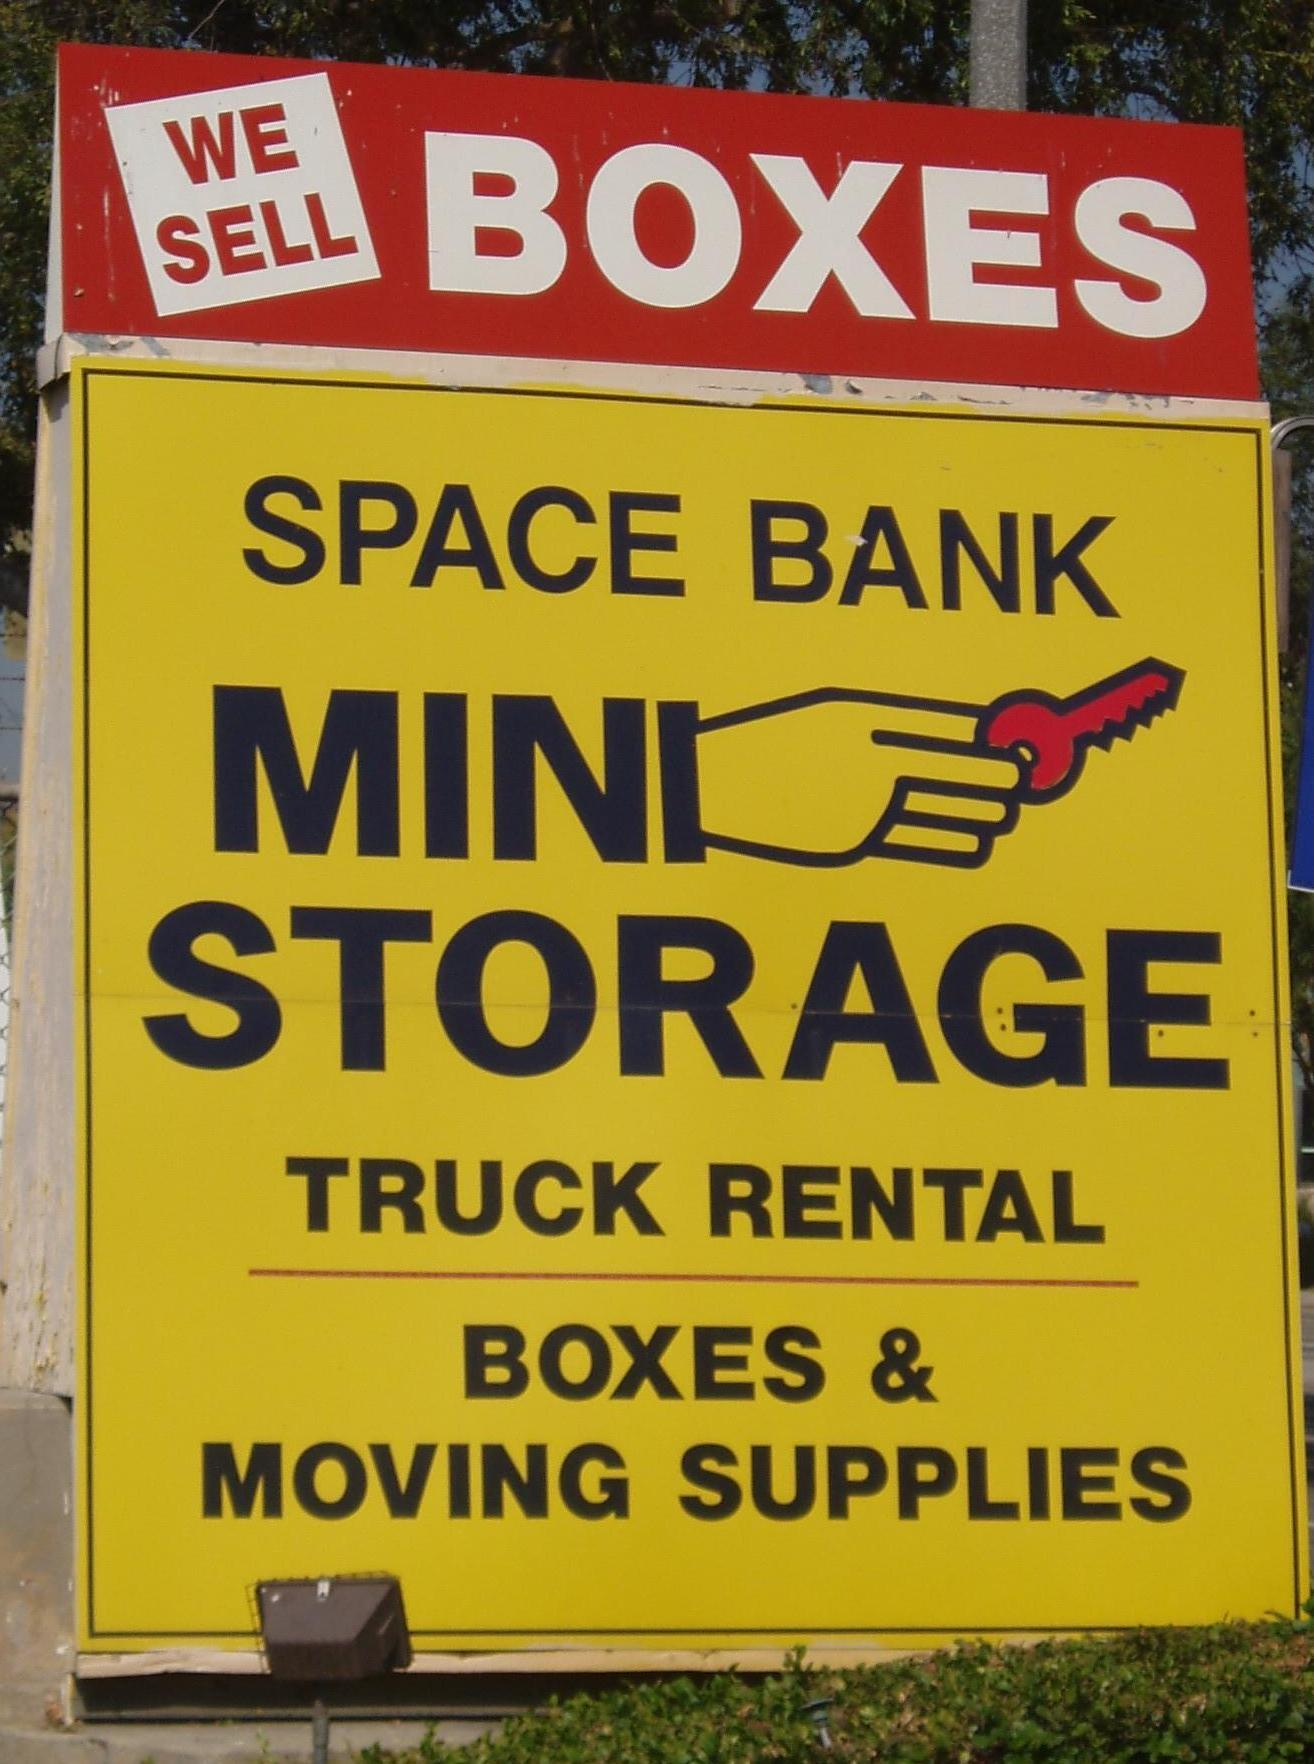 A Space Bank Mini Storage